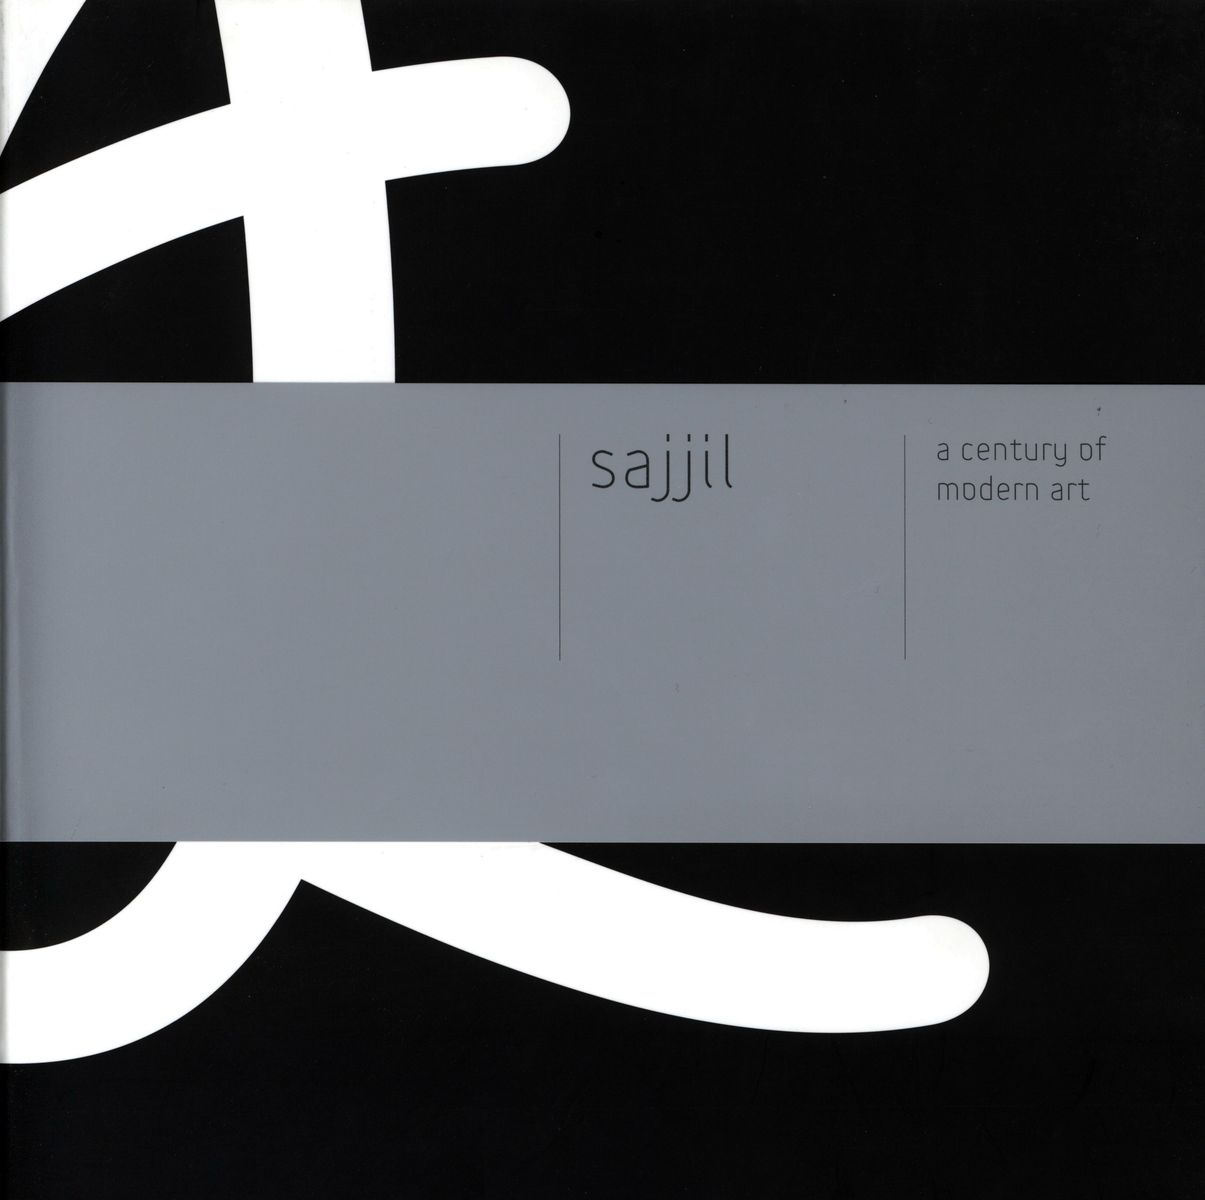 Sajjil. A Century of Modern Art по 999.00 руб от изд. Skira Editore